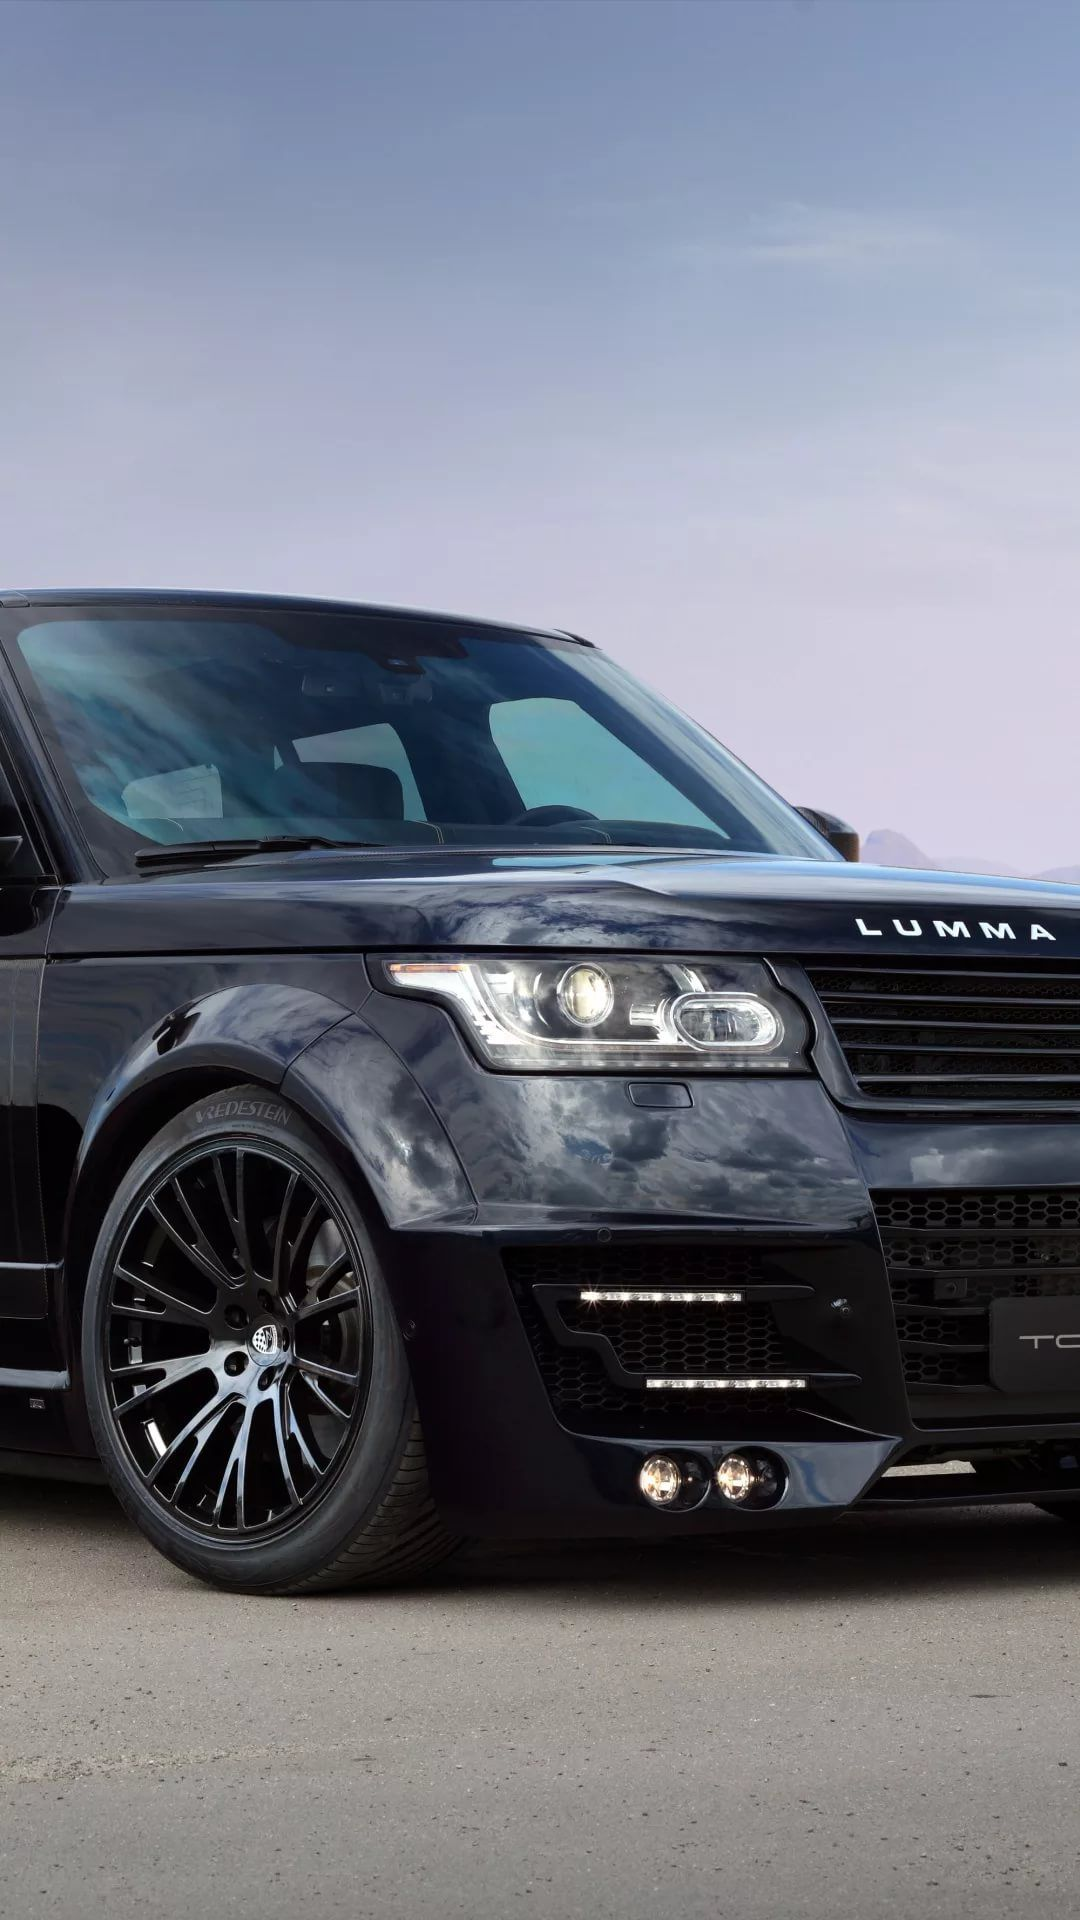 Range Rover iPhone home screen wallpaper